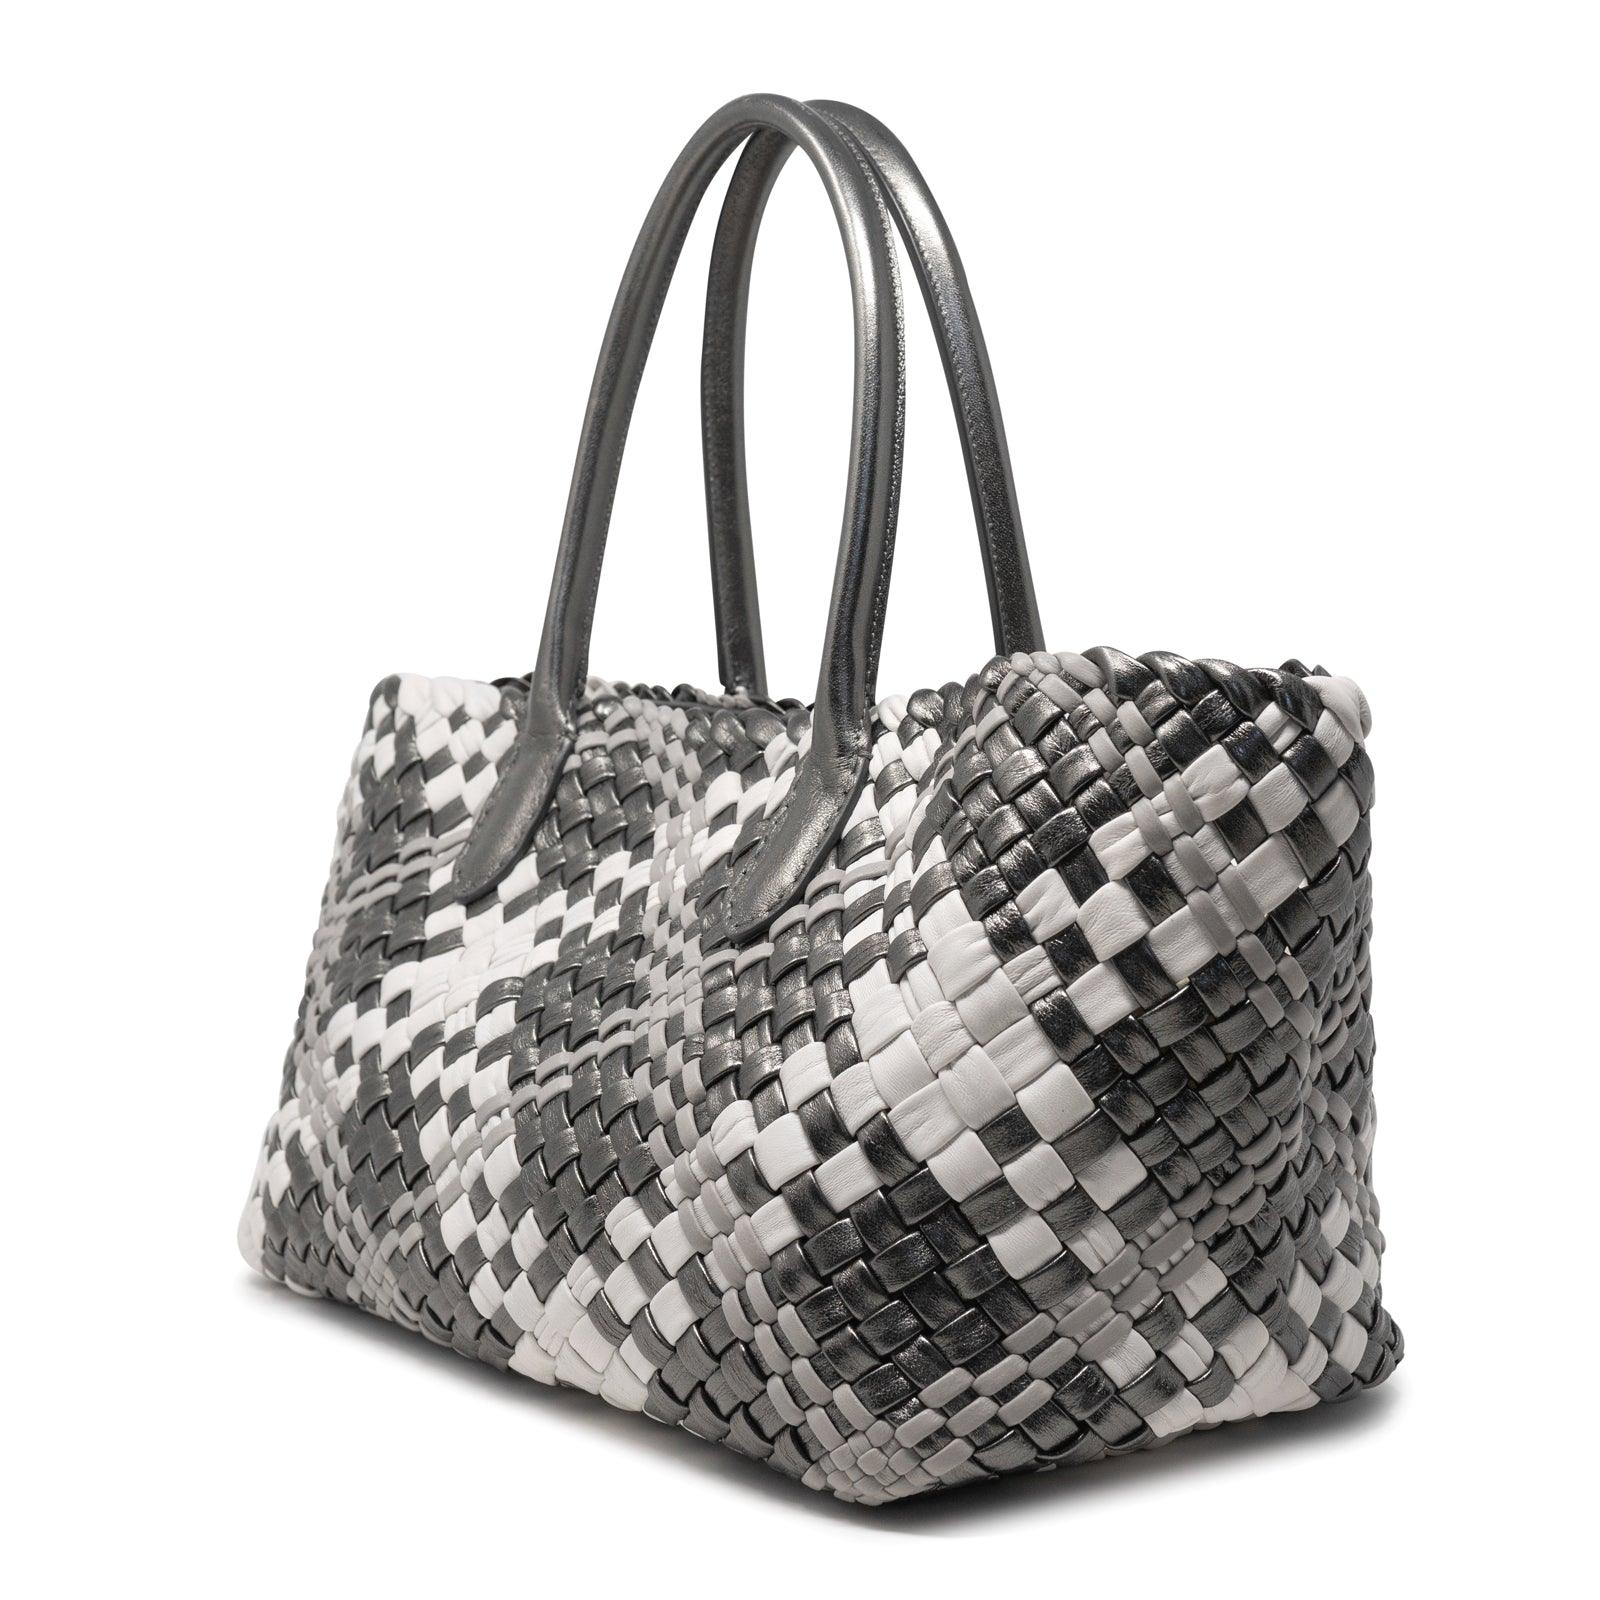 Women Intrecciato Optical Shopping Bag in Gun Metal - Jennifer Tattanelli